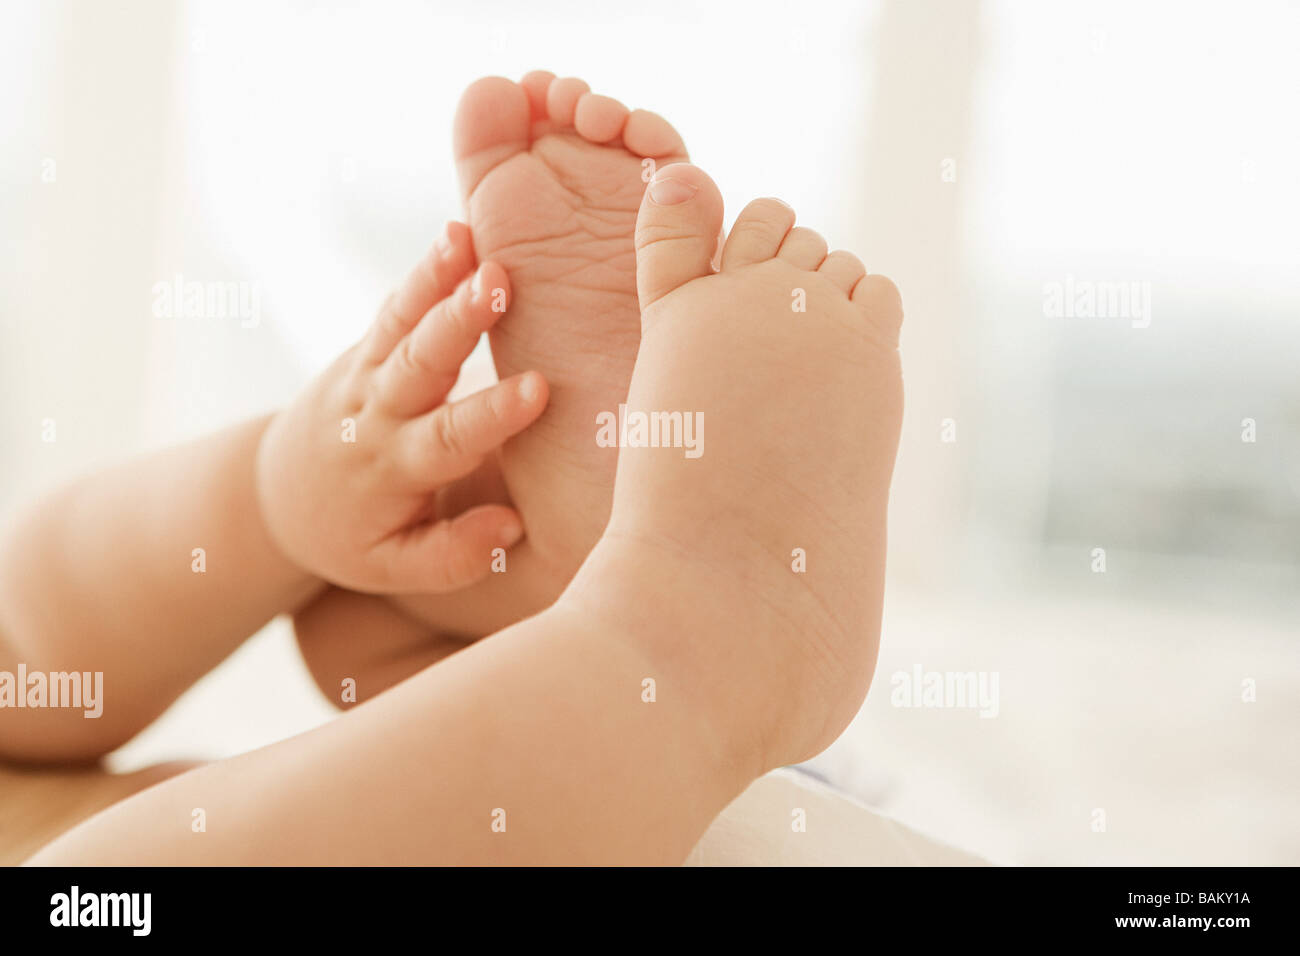 Babys hands and feet - Stock Image